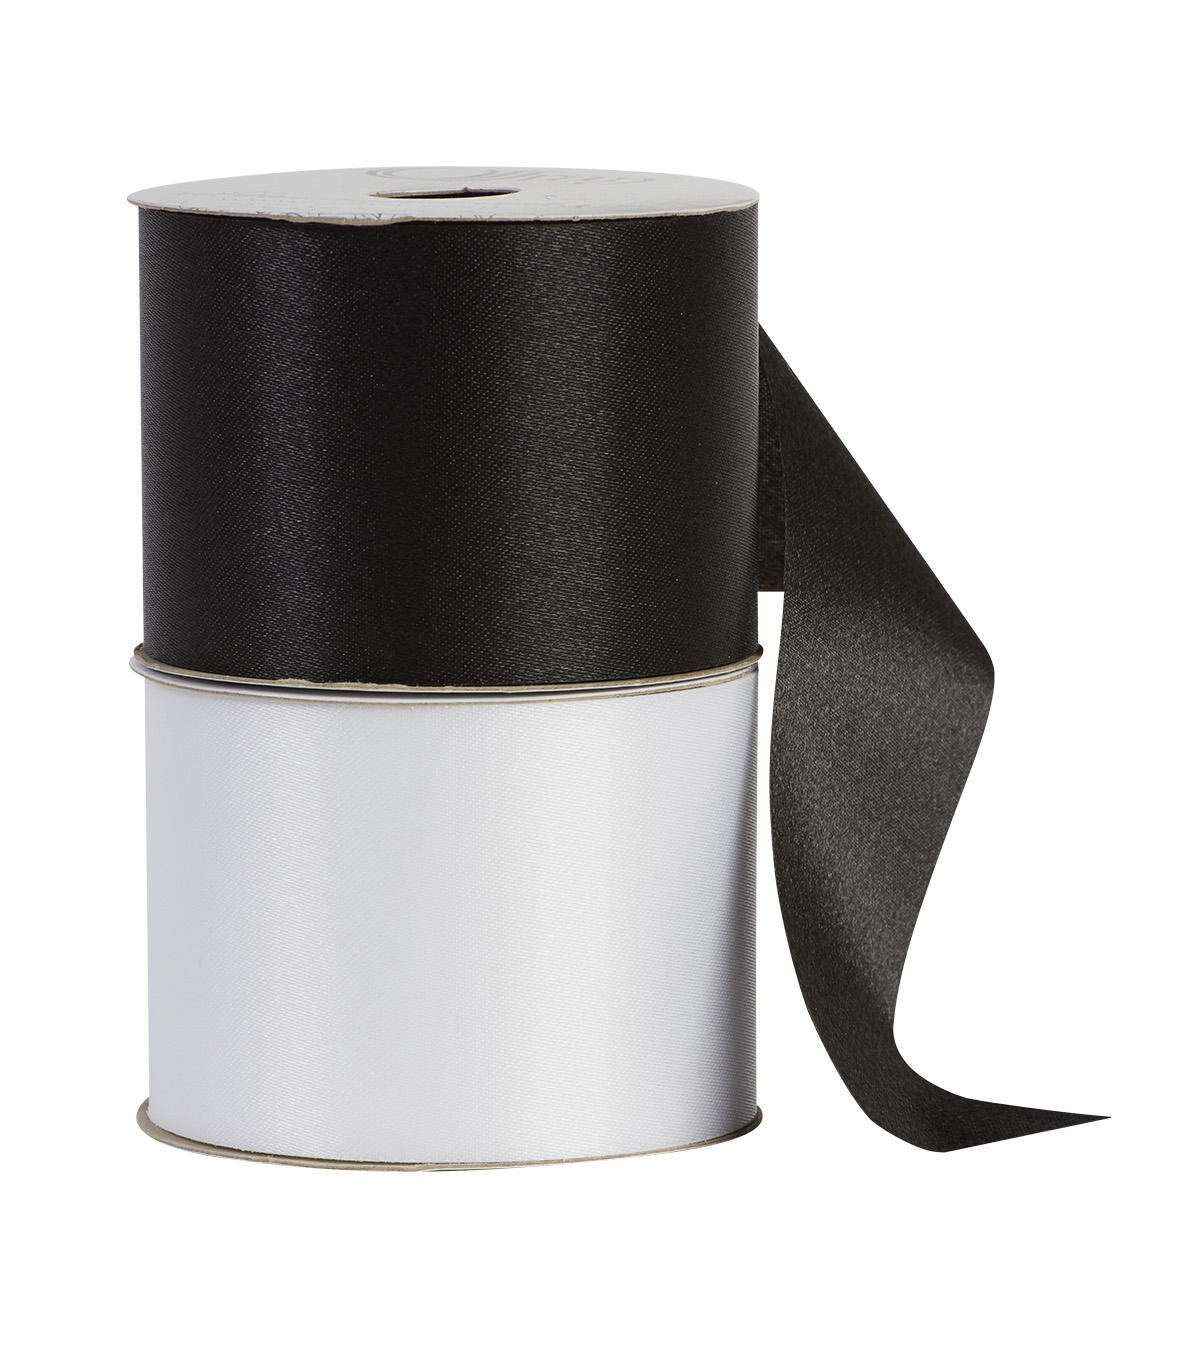 "Offray 2.25""x9' Seamaid Solid Accent Ribbon-Black"